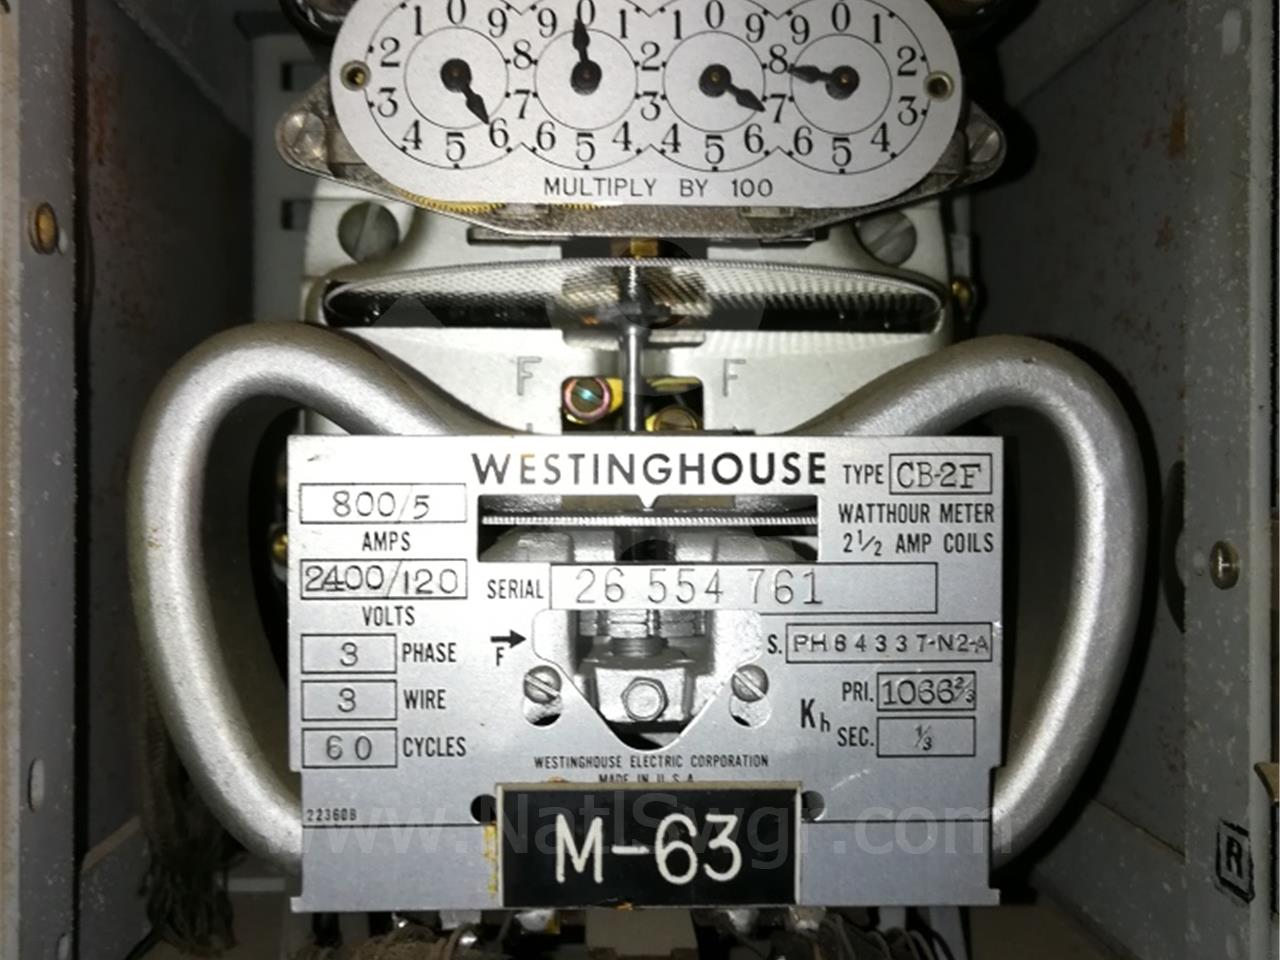 PH84337N2A Westinghouse CB-2F WATTHOUR METER RELAY